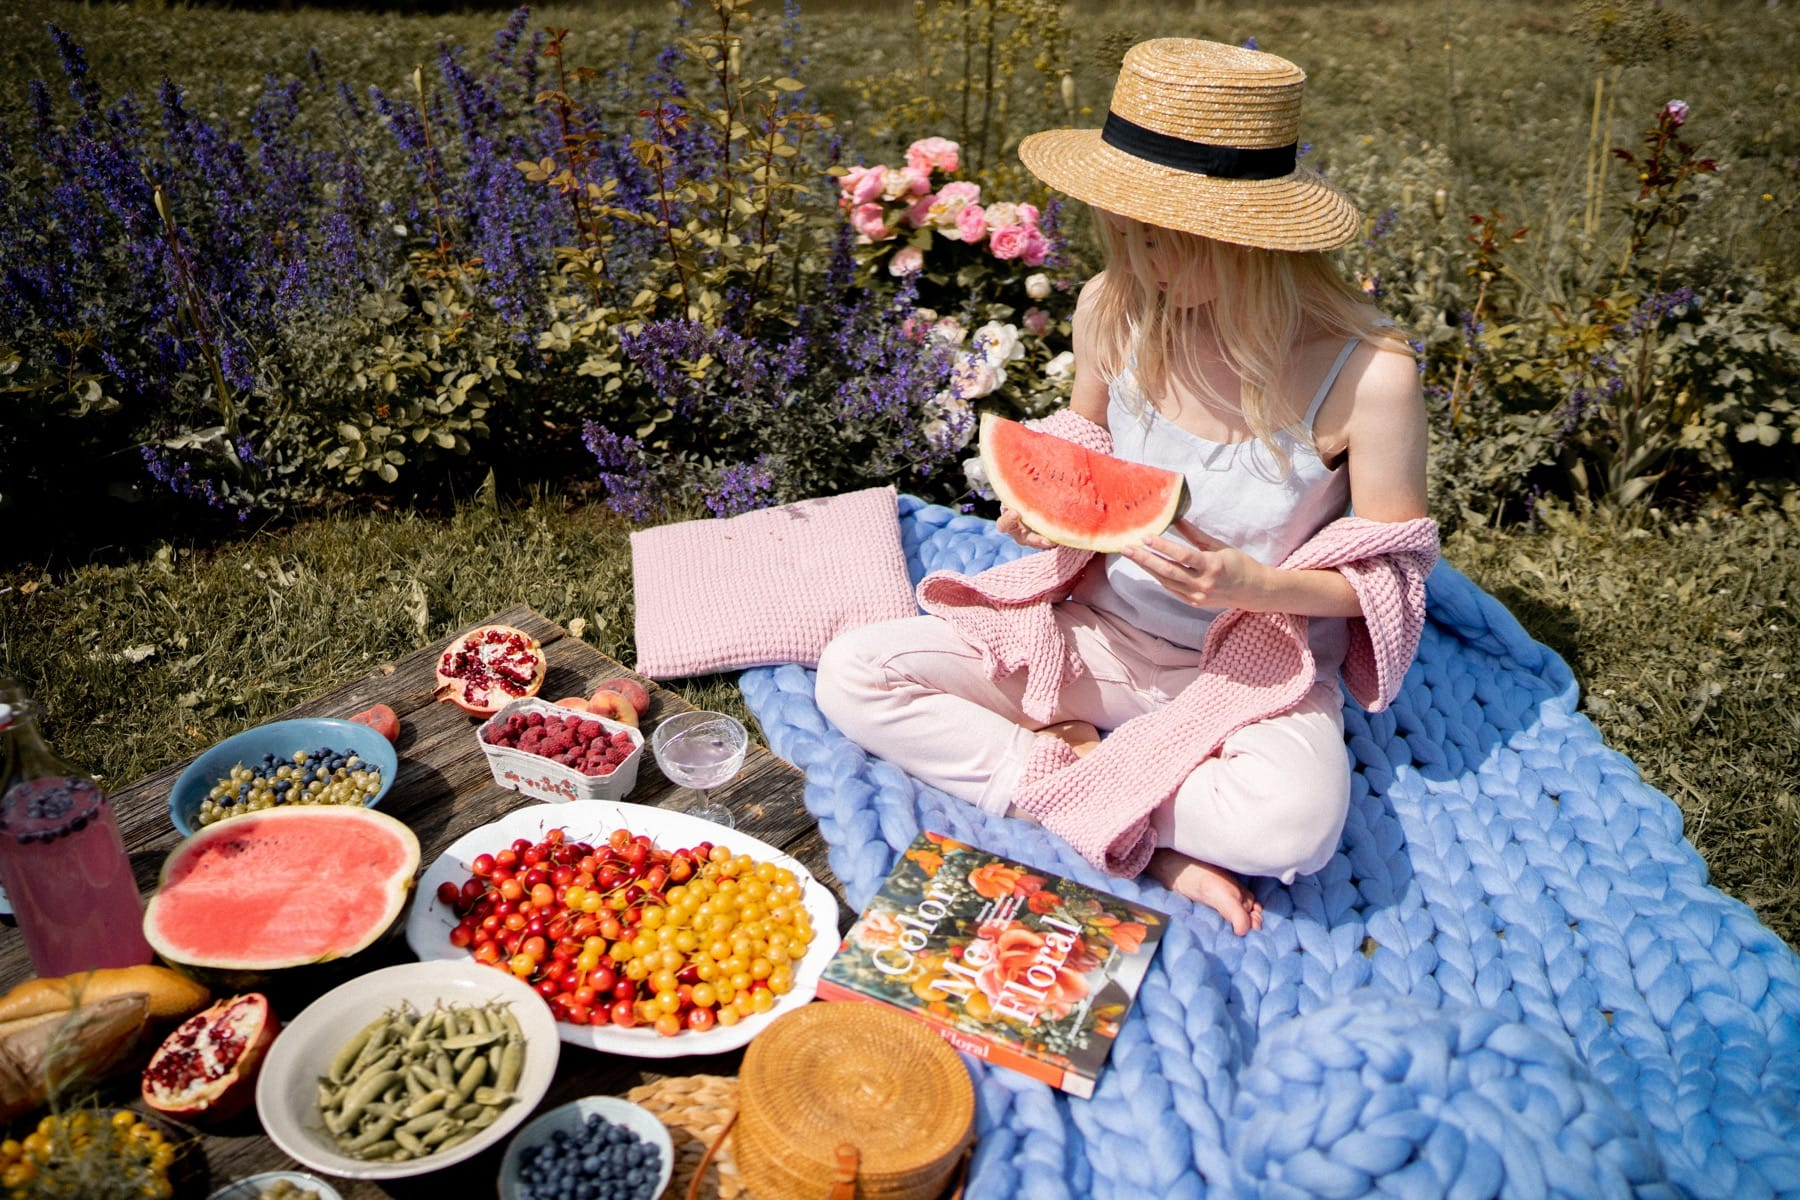 summer picnic with fruits and blue chunky blanket